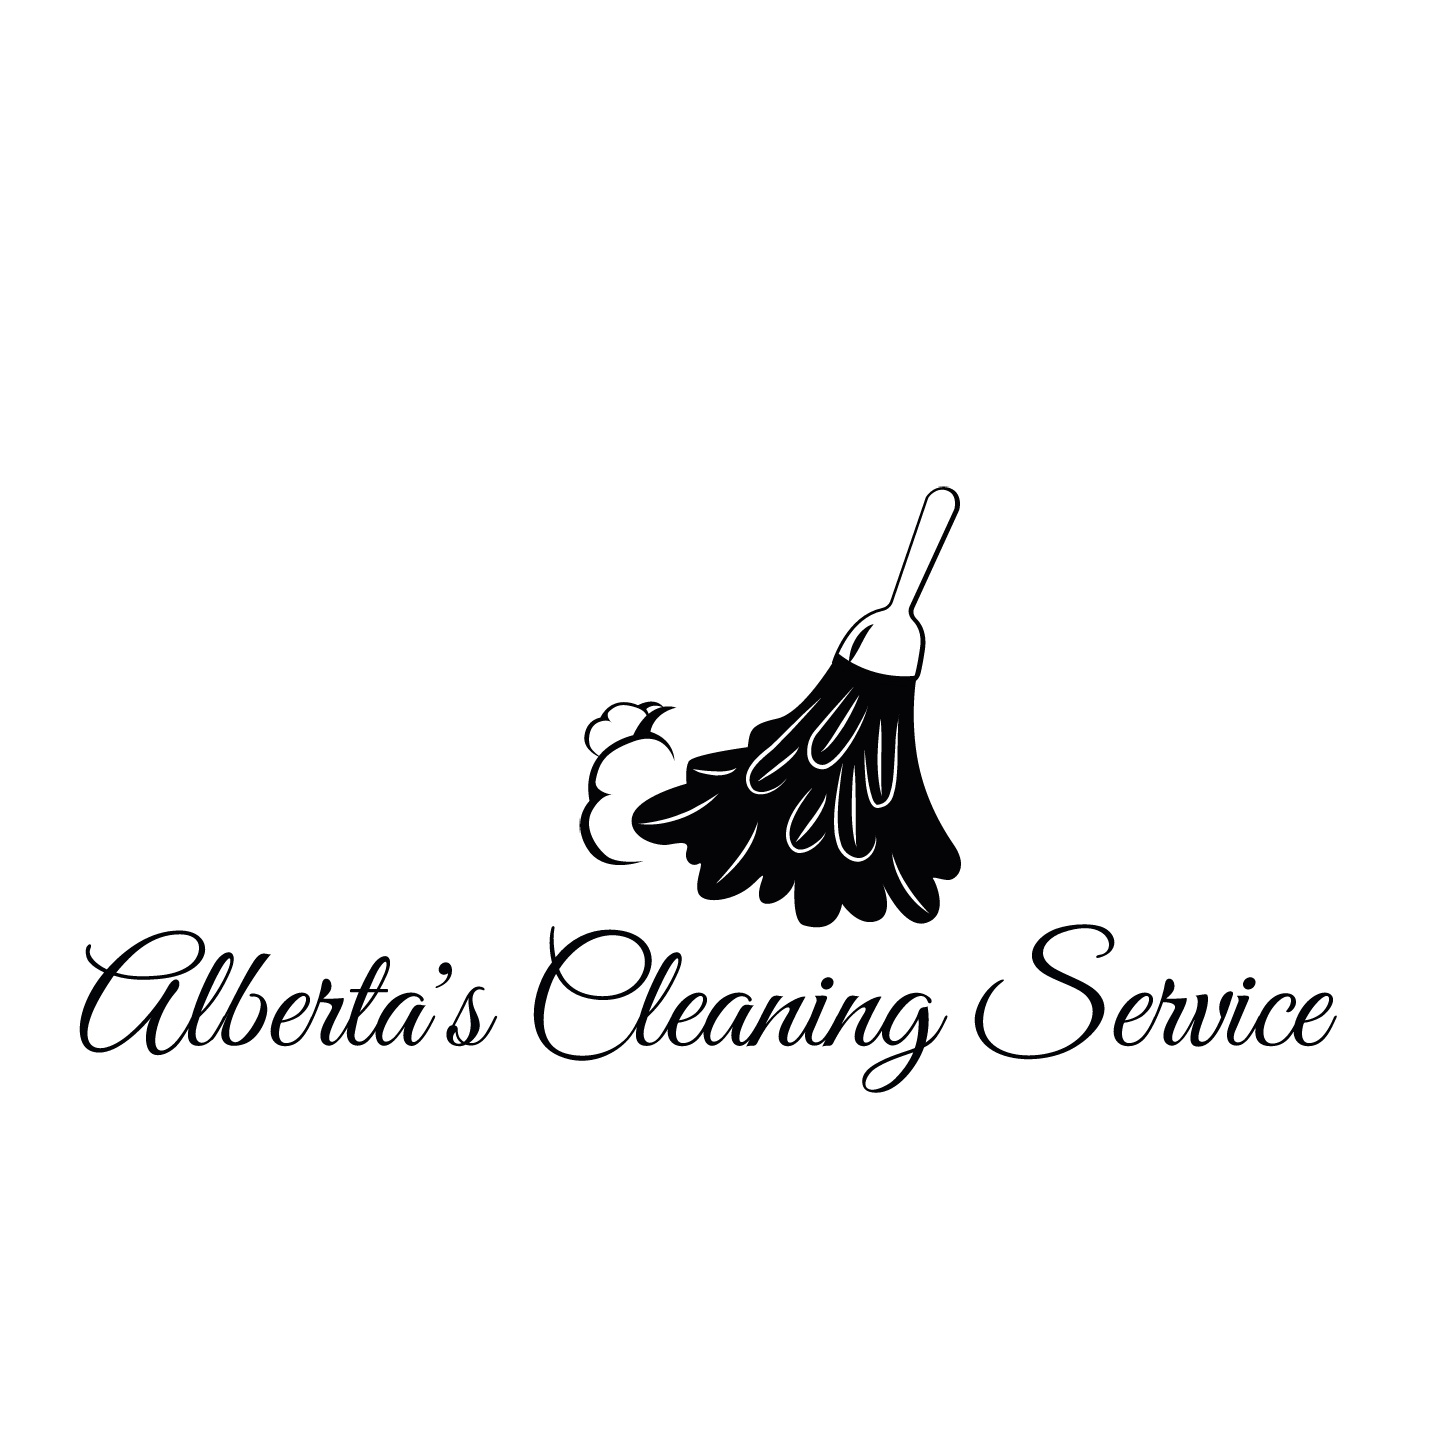 Albertas Cleaning Service, LLC